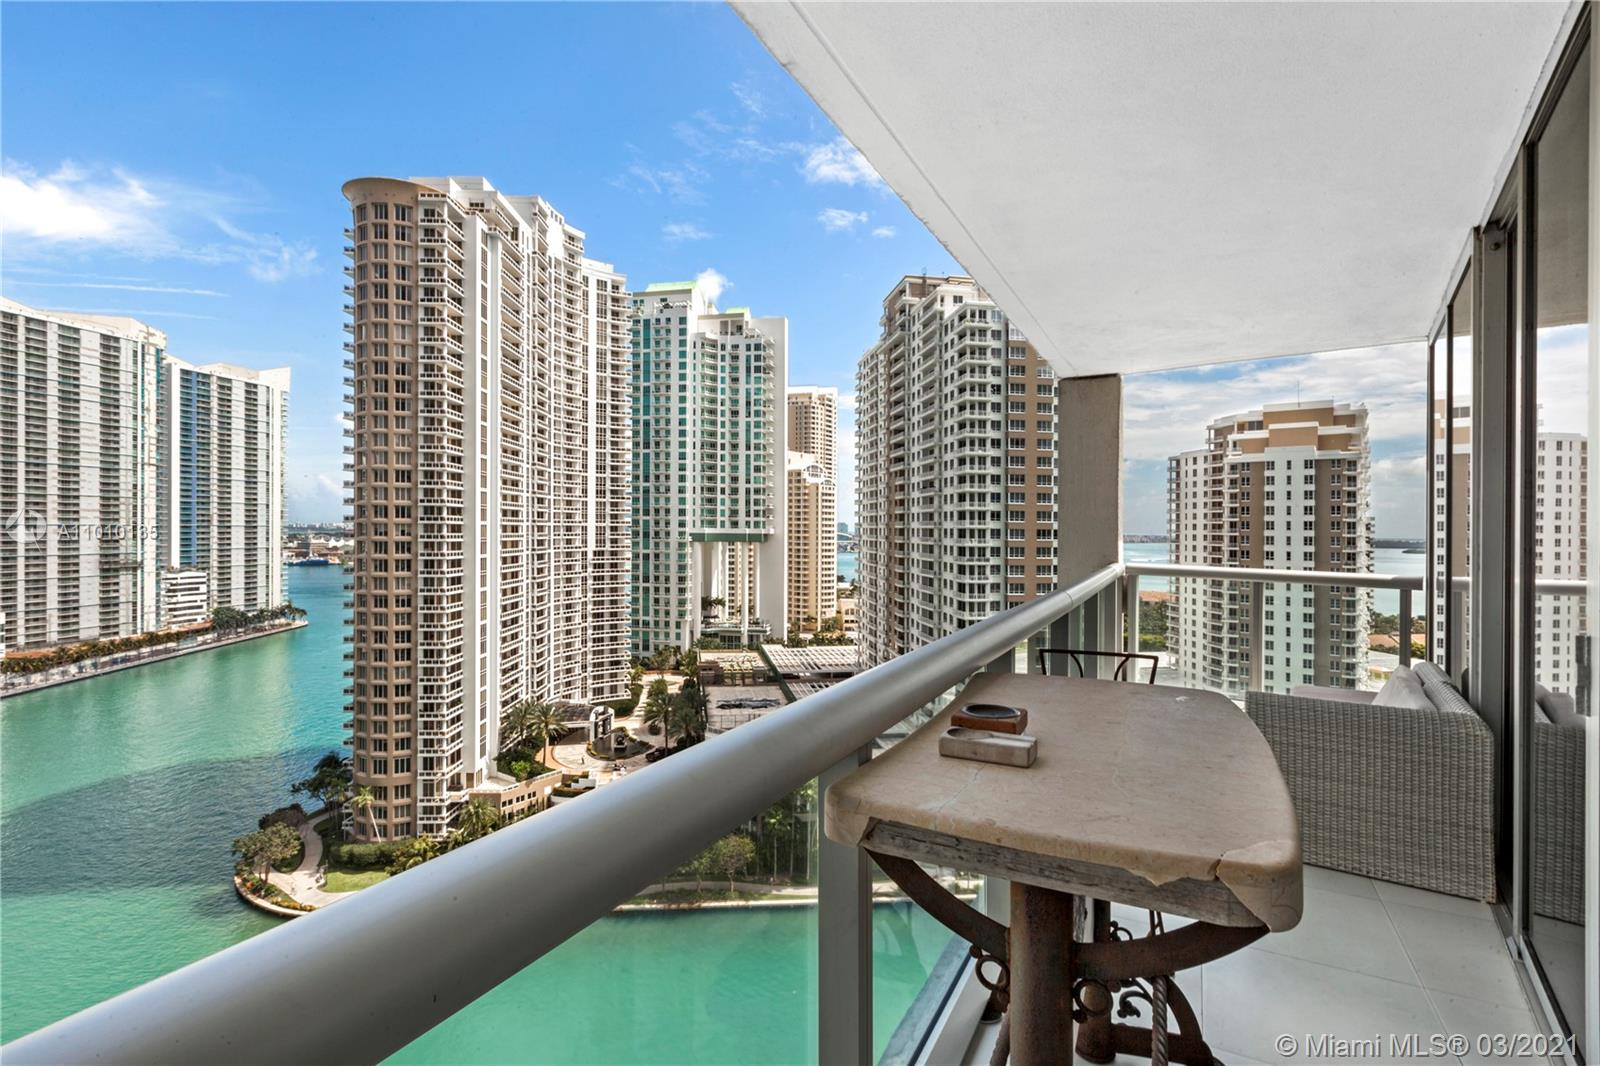 Largest 2 Bed + Den corner unit featuring floor-to-ceiling high impact glass doors that provide a bright and spectacular water view of Biscayne Bay, Miami Beach, Fisher Island and Key Biscayne. Split plan with expansive balcony and open kitchen with Wolf and Subzero Appliances. Icon Brickell offers a 5 star Spa & Fitness Center w/ largest Olympic pool and oversized Jacuzzi. Assigned Parking Space and Full time (24/7) concierge & valet parking. 3 top restaurants on site and walking distance to the best restaurants and shops in Brickell. Best deal in Brickell under 1M. Den can be enclosed into a 3rd bedroom. Unit Rented for $4500/month until November 2021